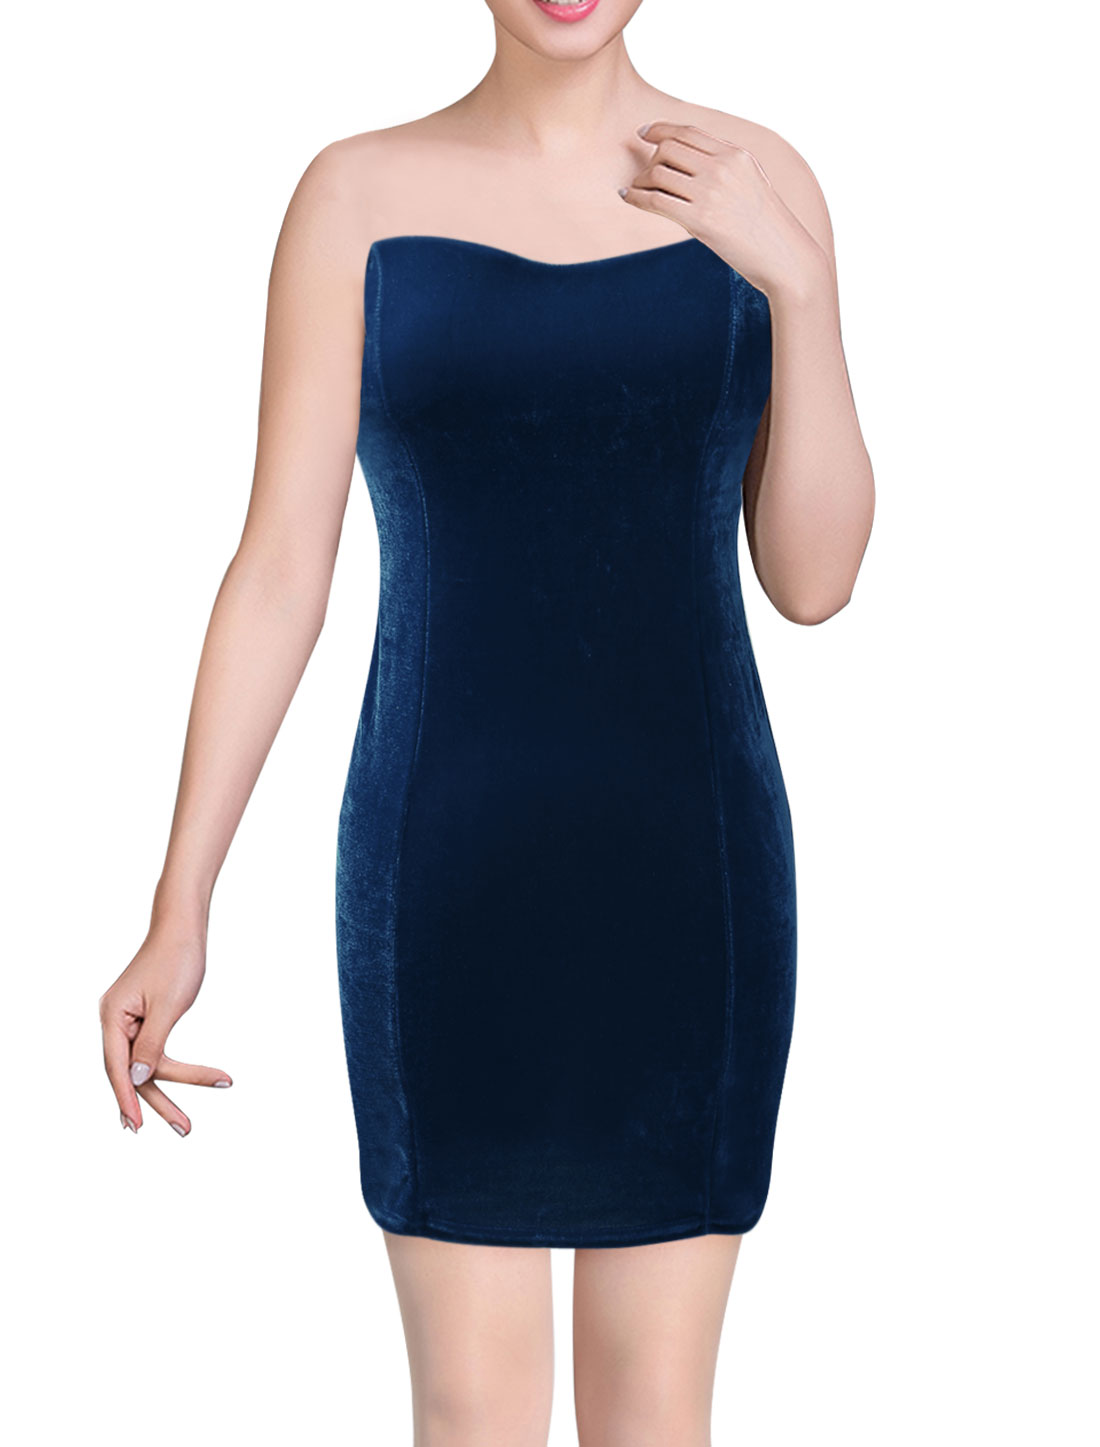 Women Sweetheart Neckline Sleeveless Evening Dresses Navy Blue XS